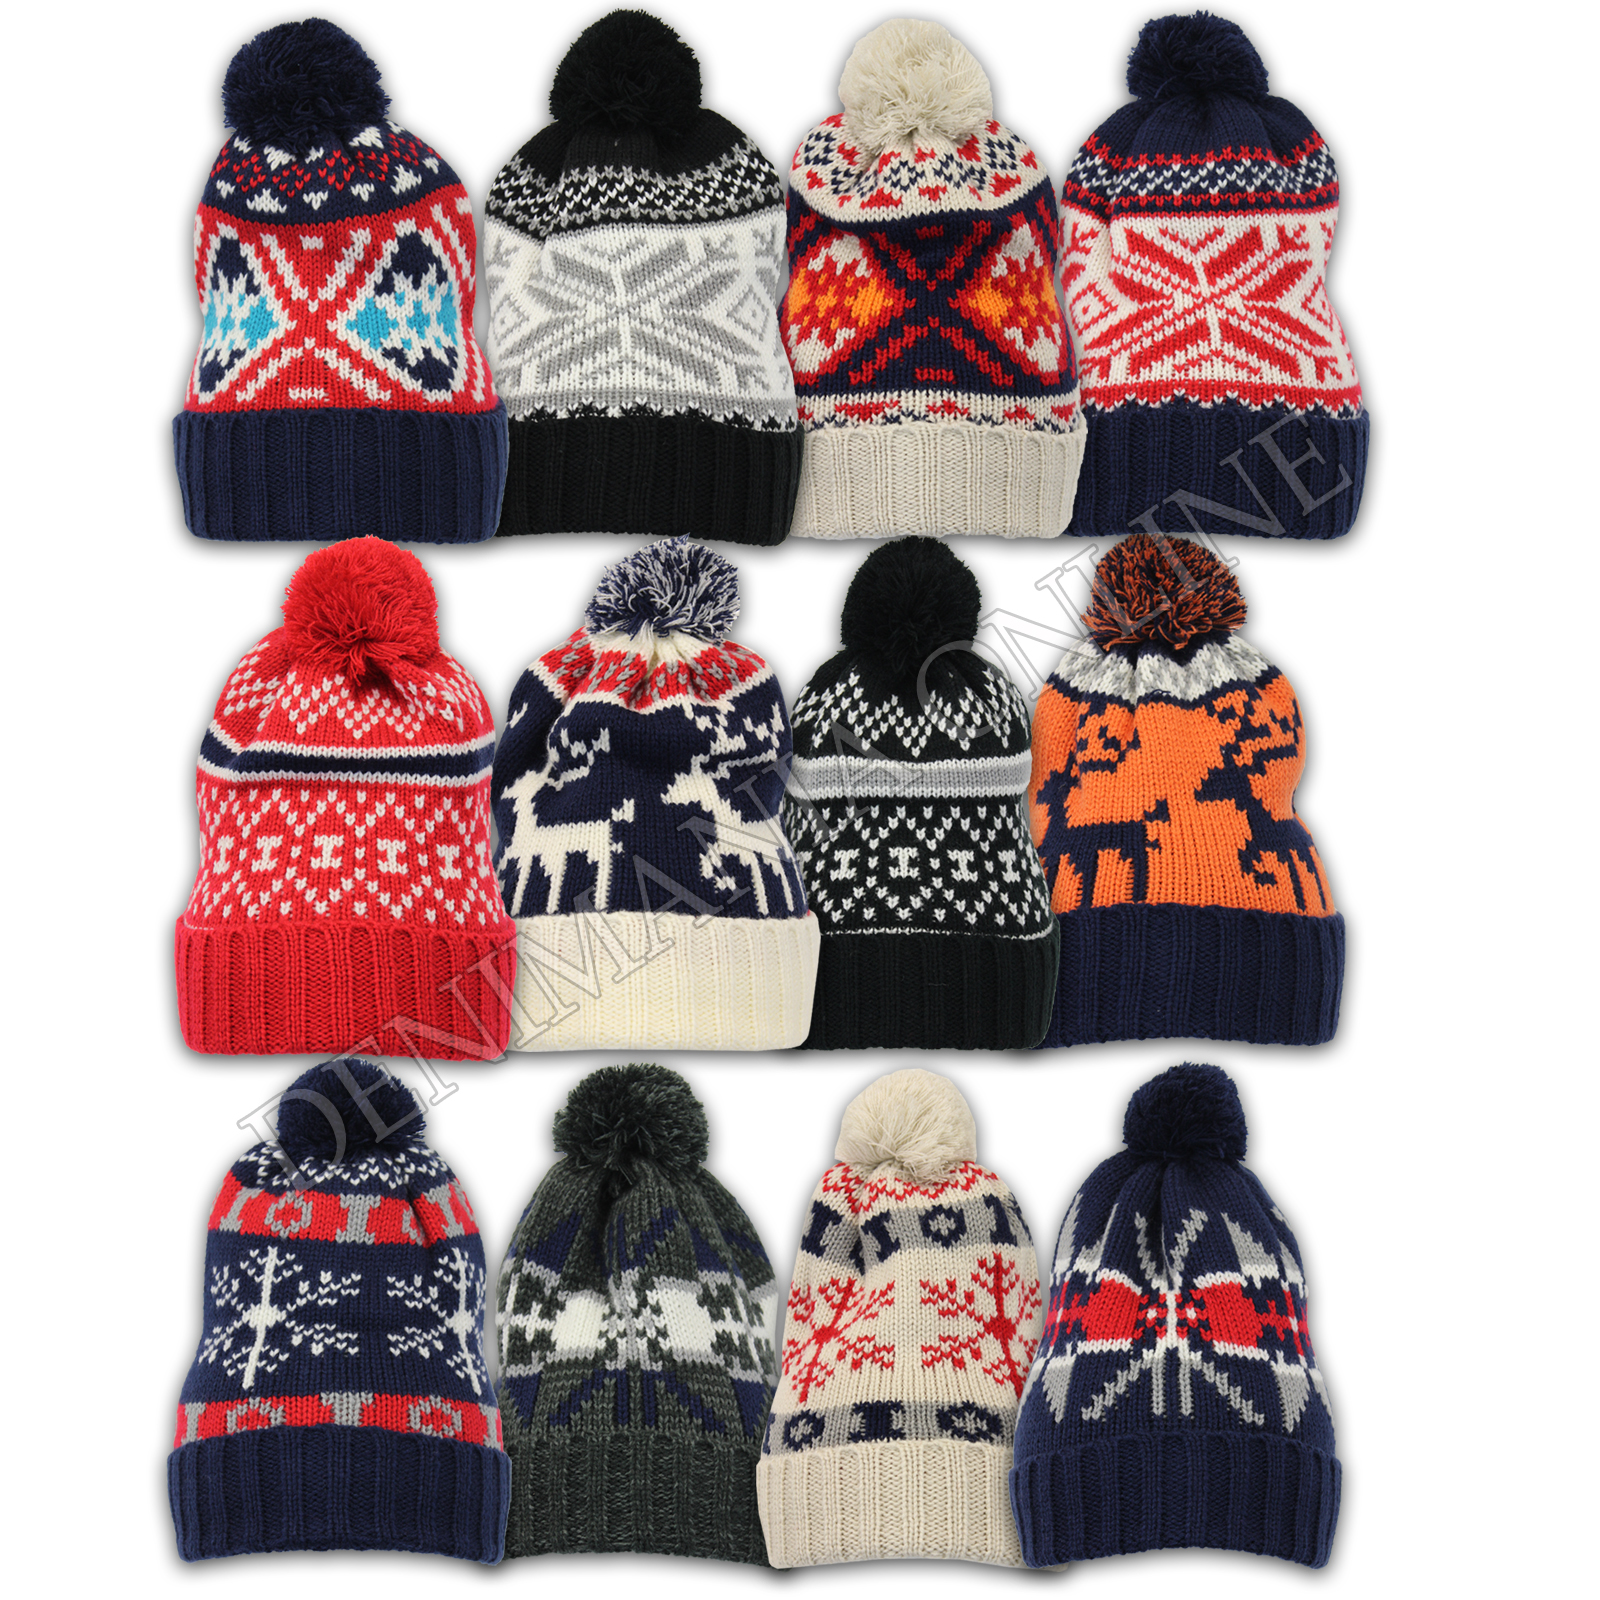 69321ddddfa514 Details about mens Soul Star cable knitted bobble ladies winter reindeer pom  pom beanie hat